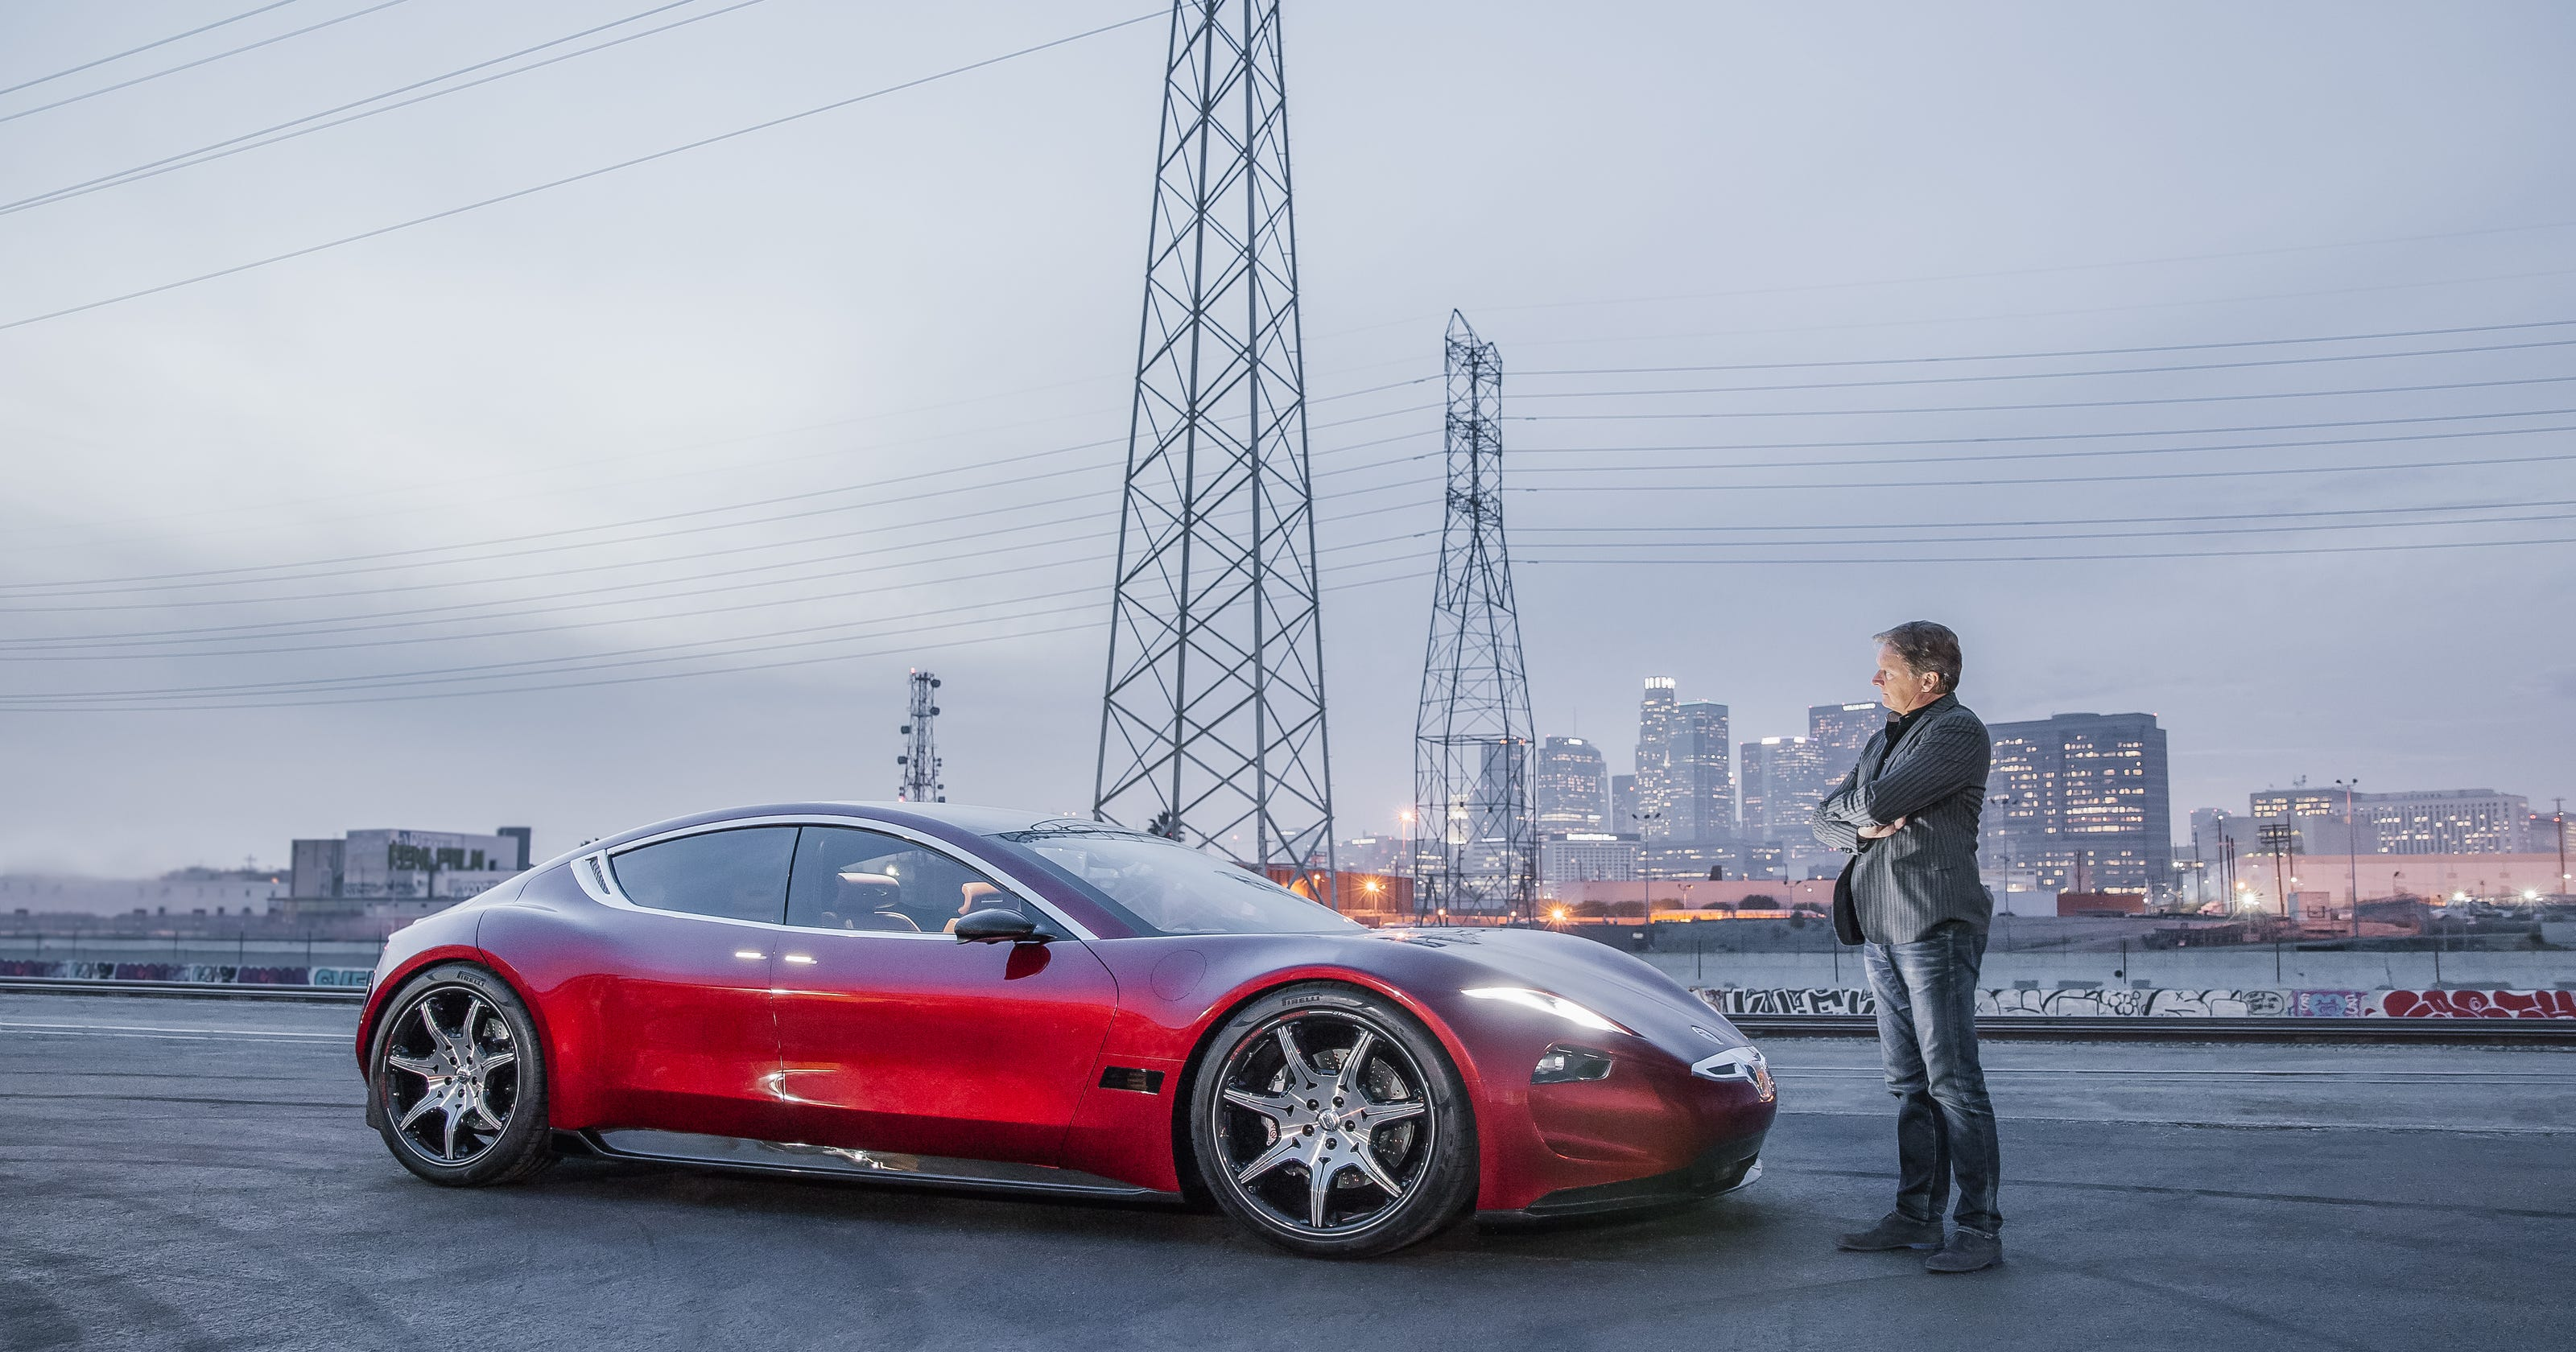 Fisker's first all-electric car takes on Tesla: Exclusive details